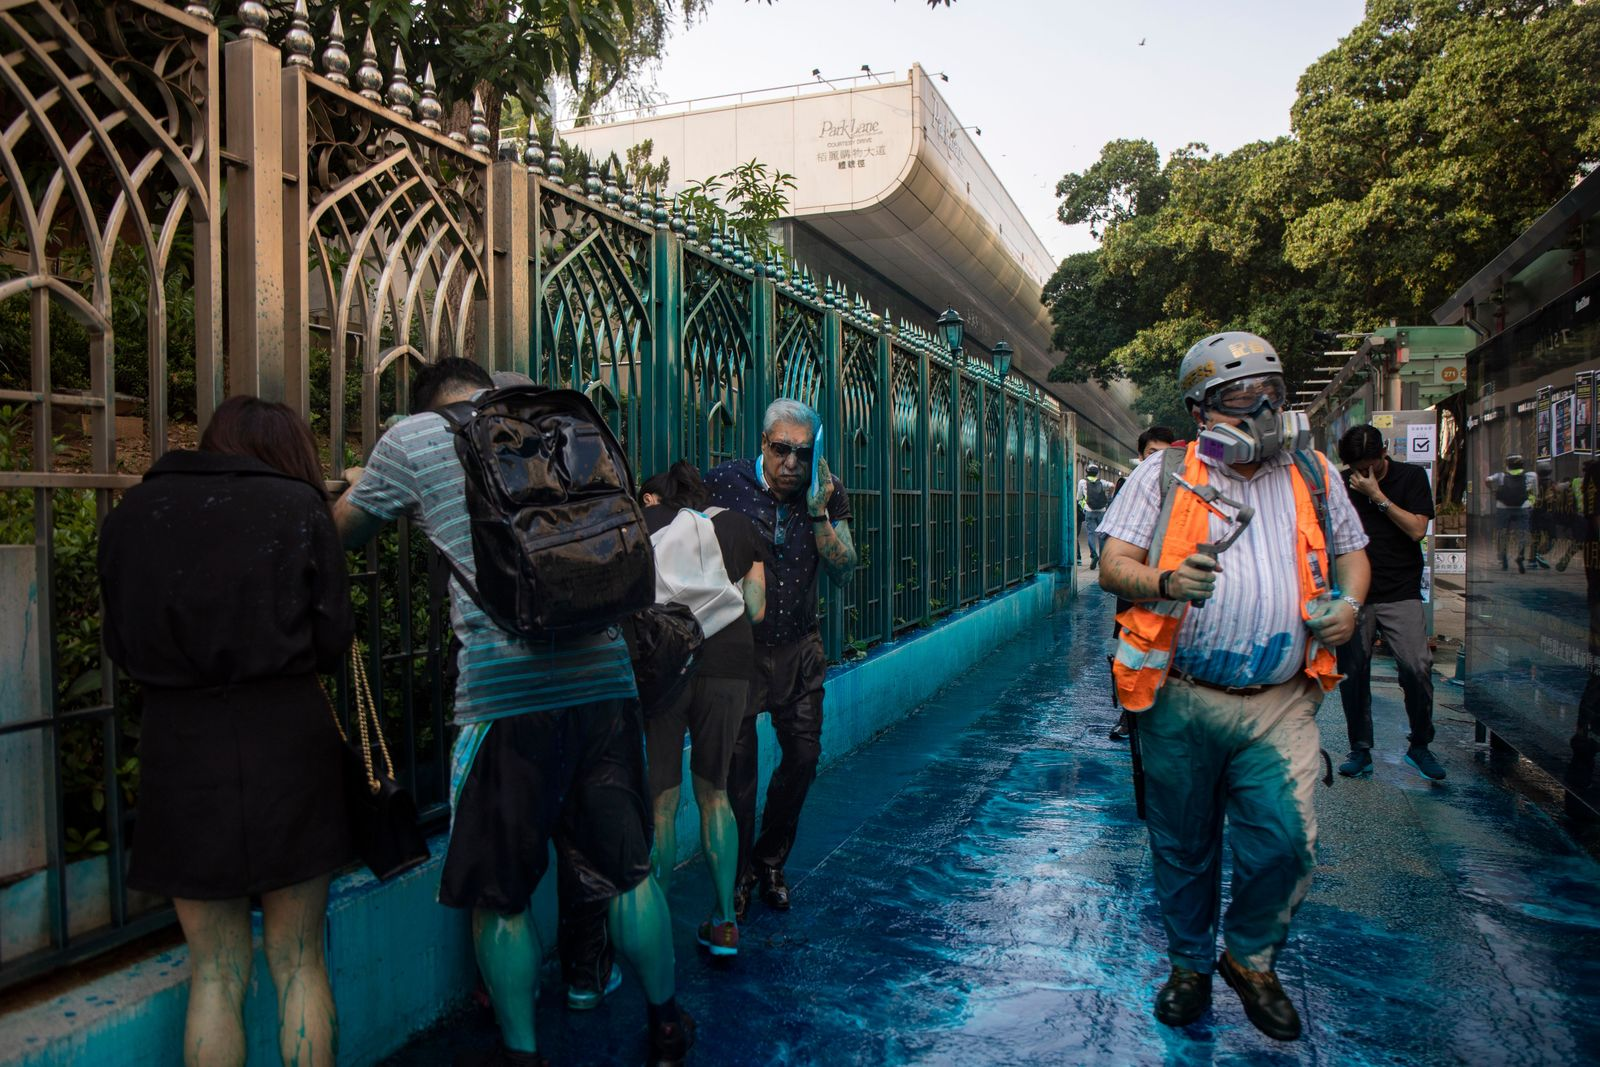 In this Sunday, Oct. 20, 2019 photo, people react after sprayed with blue-dyed water by a police riot-control vehicle during a protest outside the Kowloon Mosque in Hong Kong. (Chan Cheuk Fai/The Initium via AP)